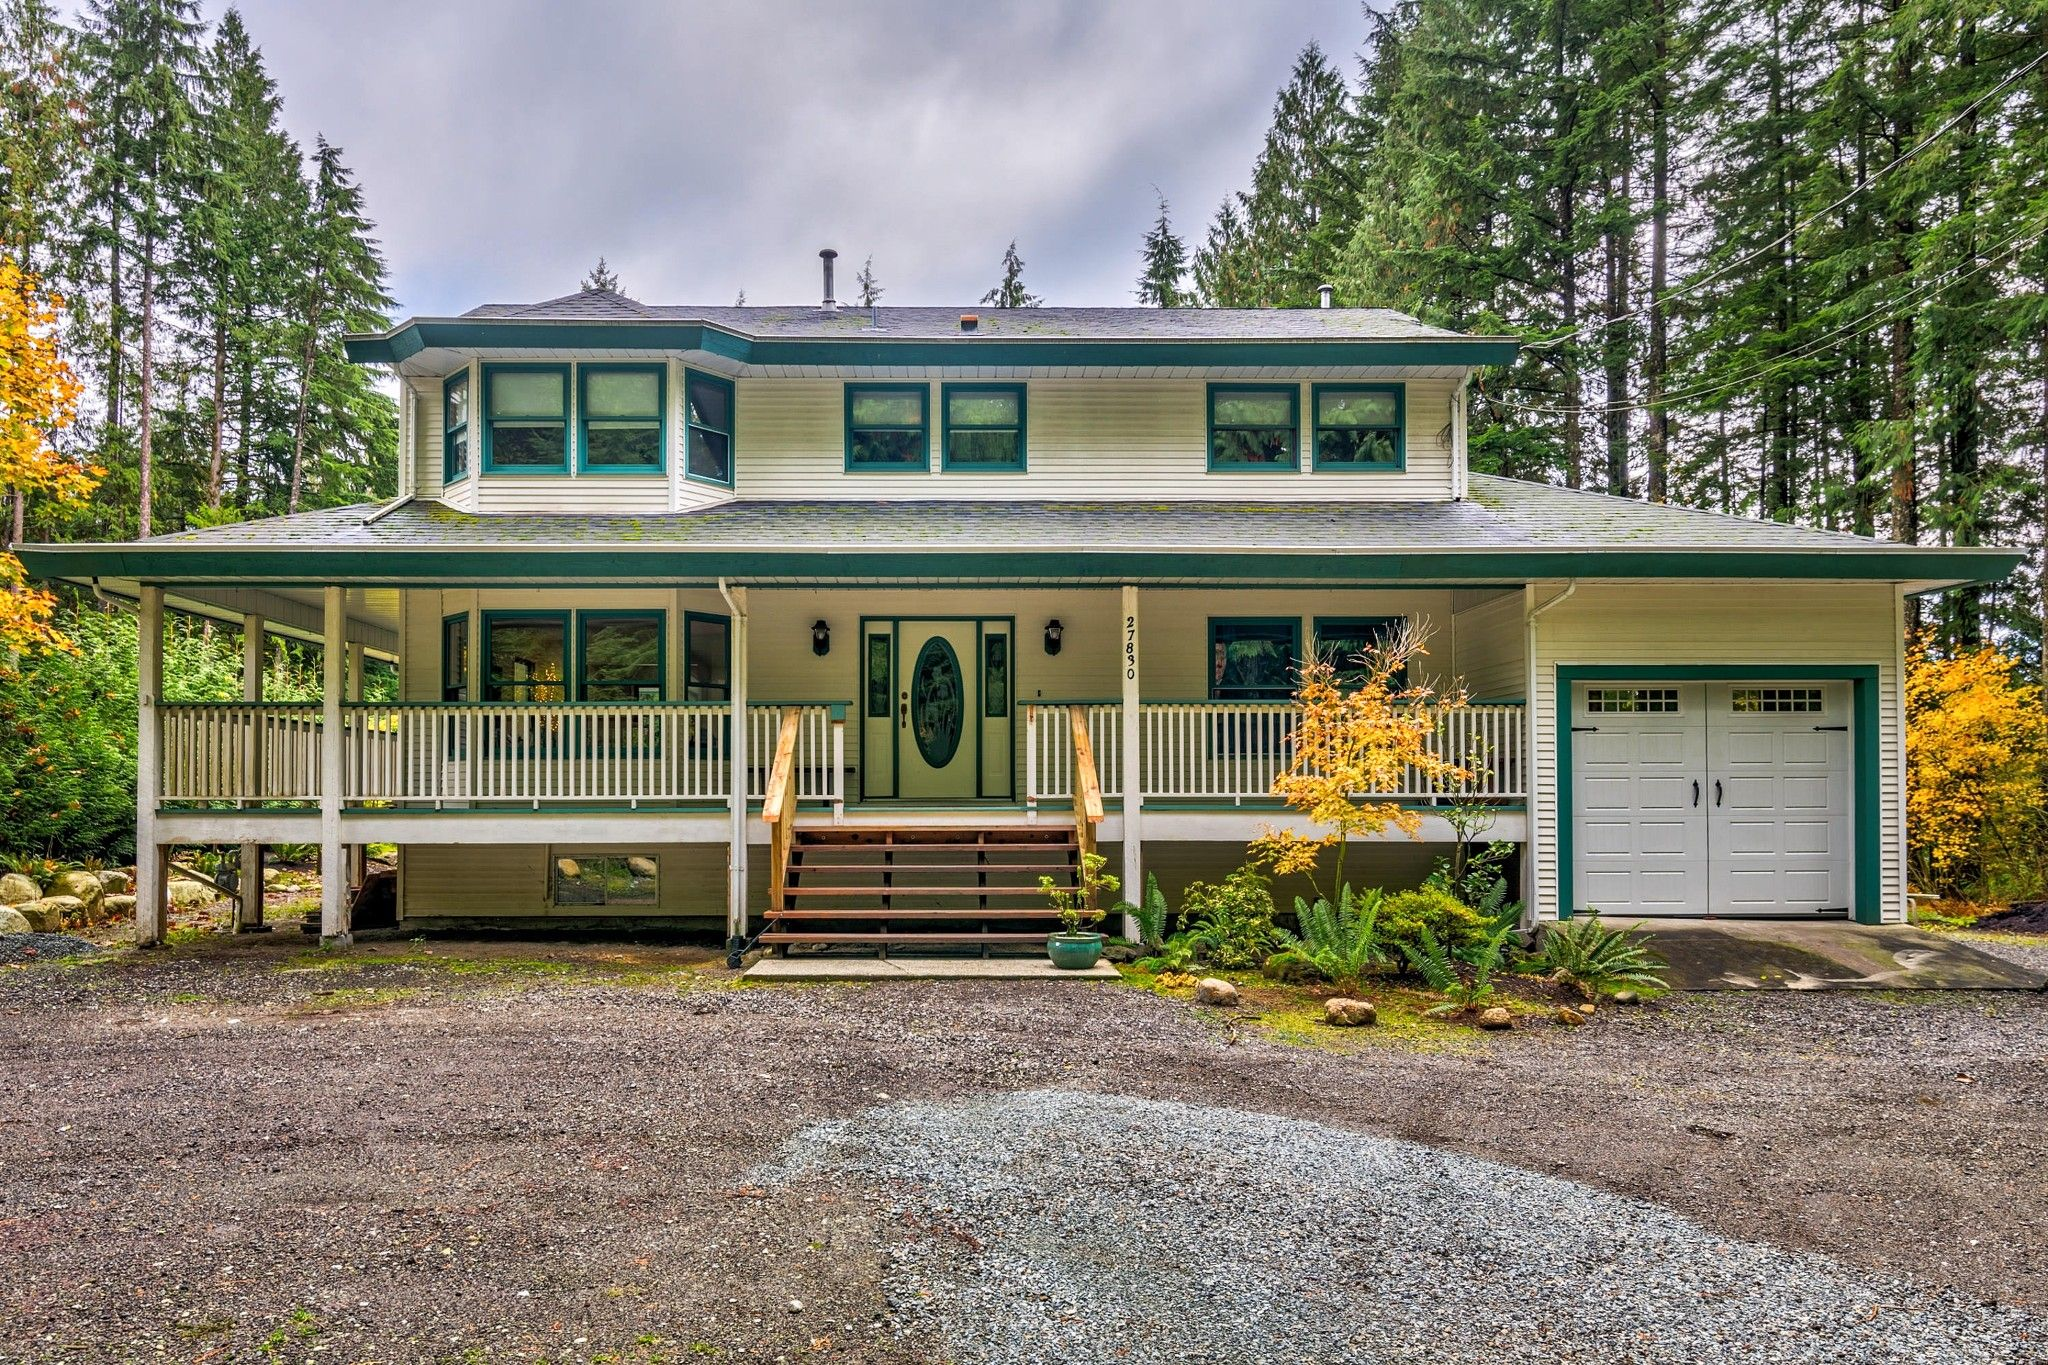 Photo 1: Photos: 27830 Laurel Place in Maple Ridge: Northeast House for sale : MLS®# R2415483